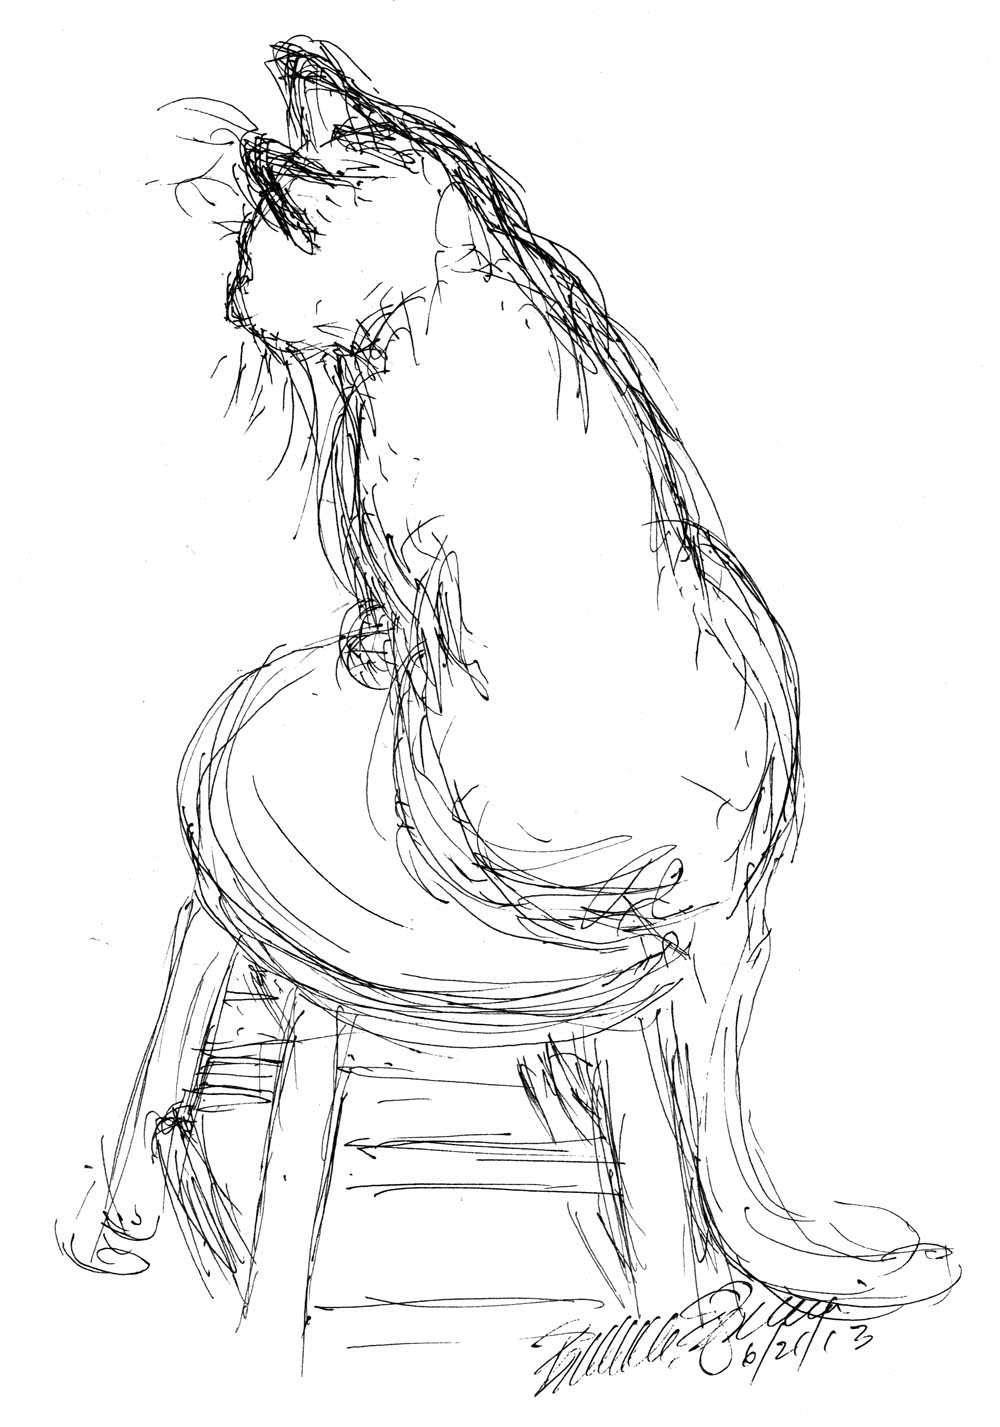 ink sketch of cat on stool